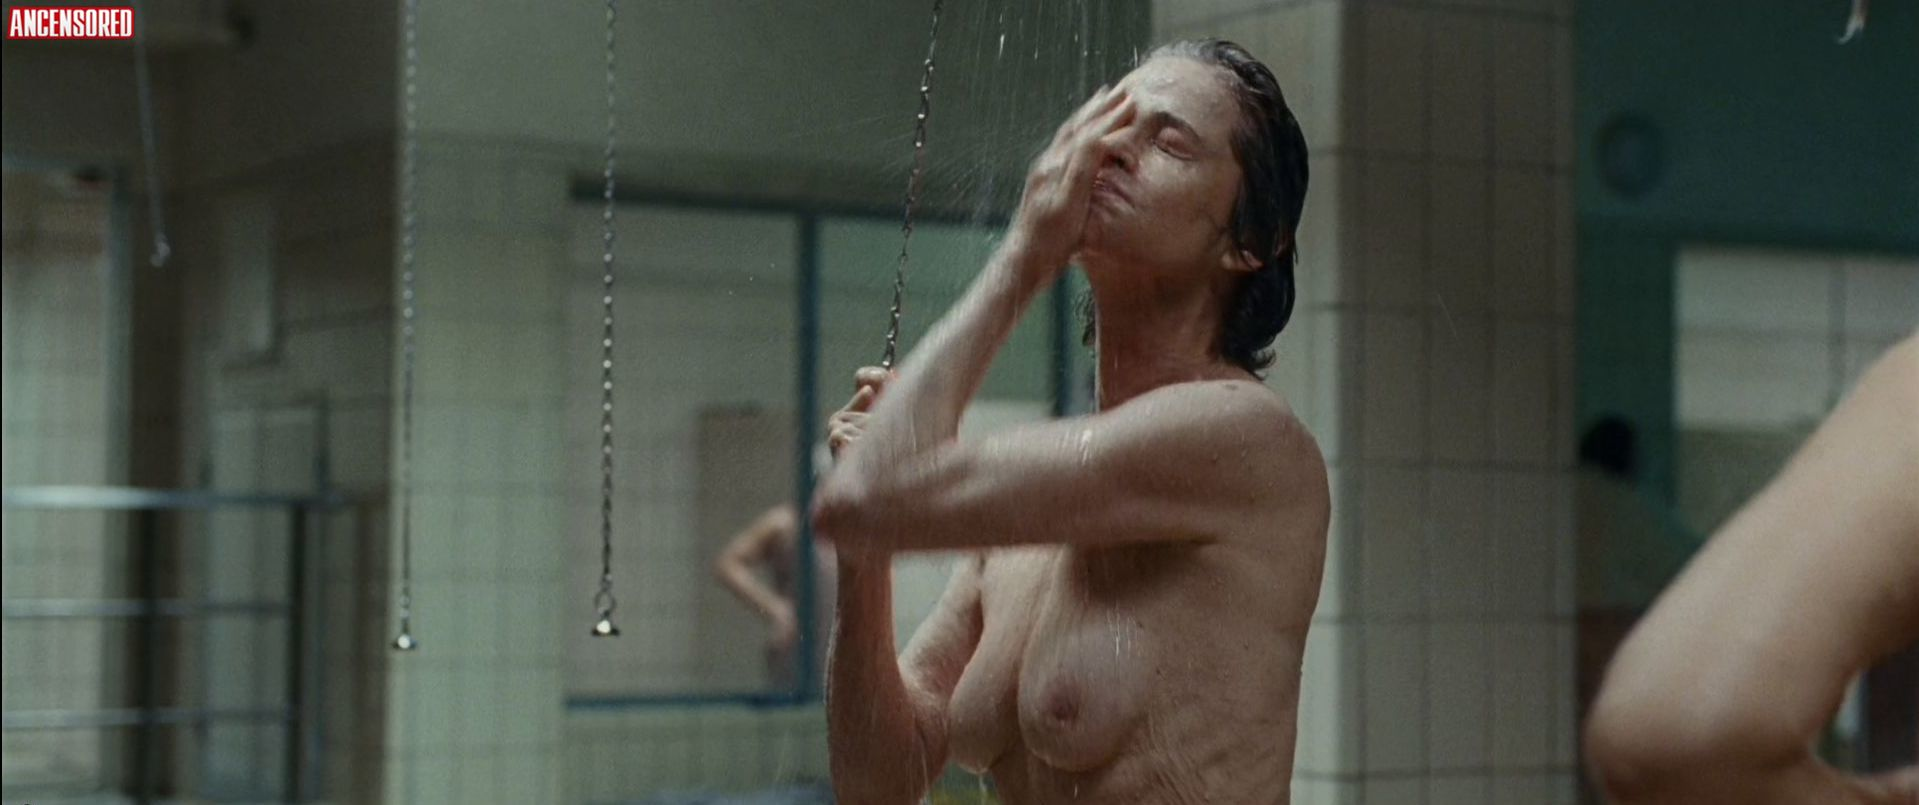 Naked Charlotte Rampling in Hannah < ANCENSORED